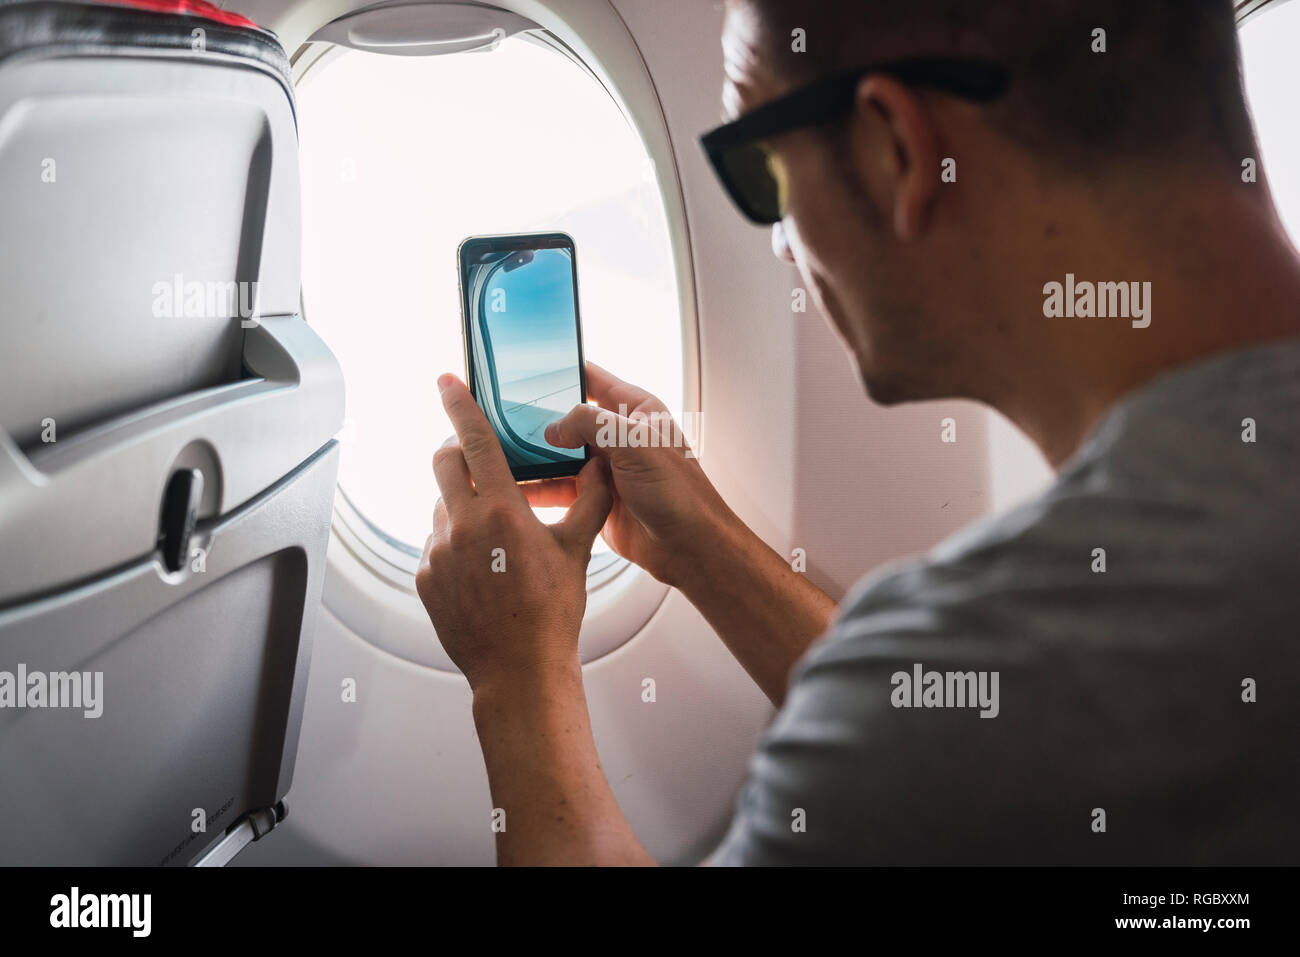 Man in airplane, using smartphone, taking a picture, airplane window - Stock Image